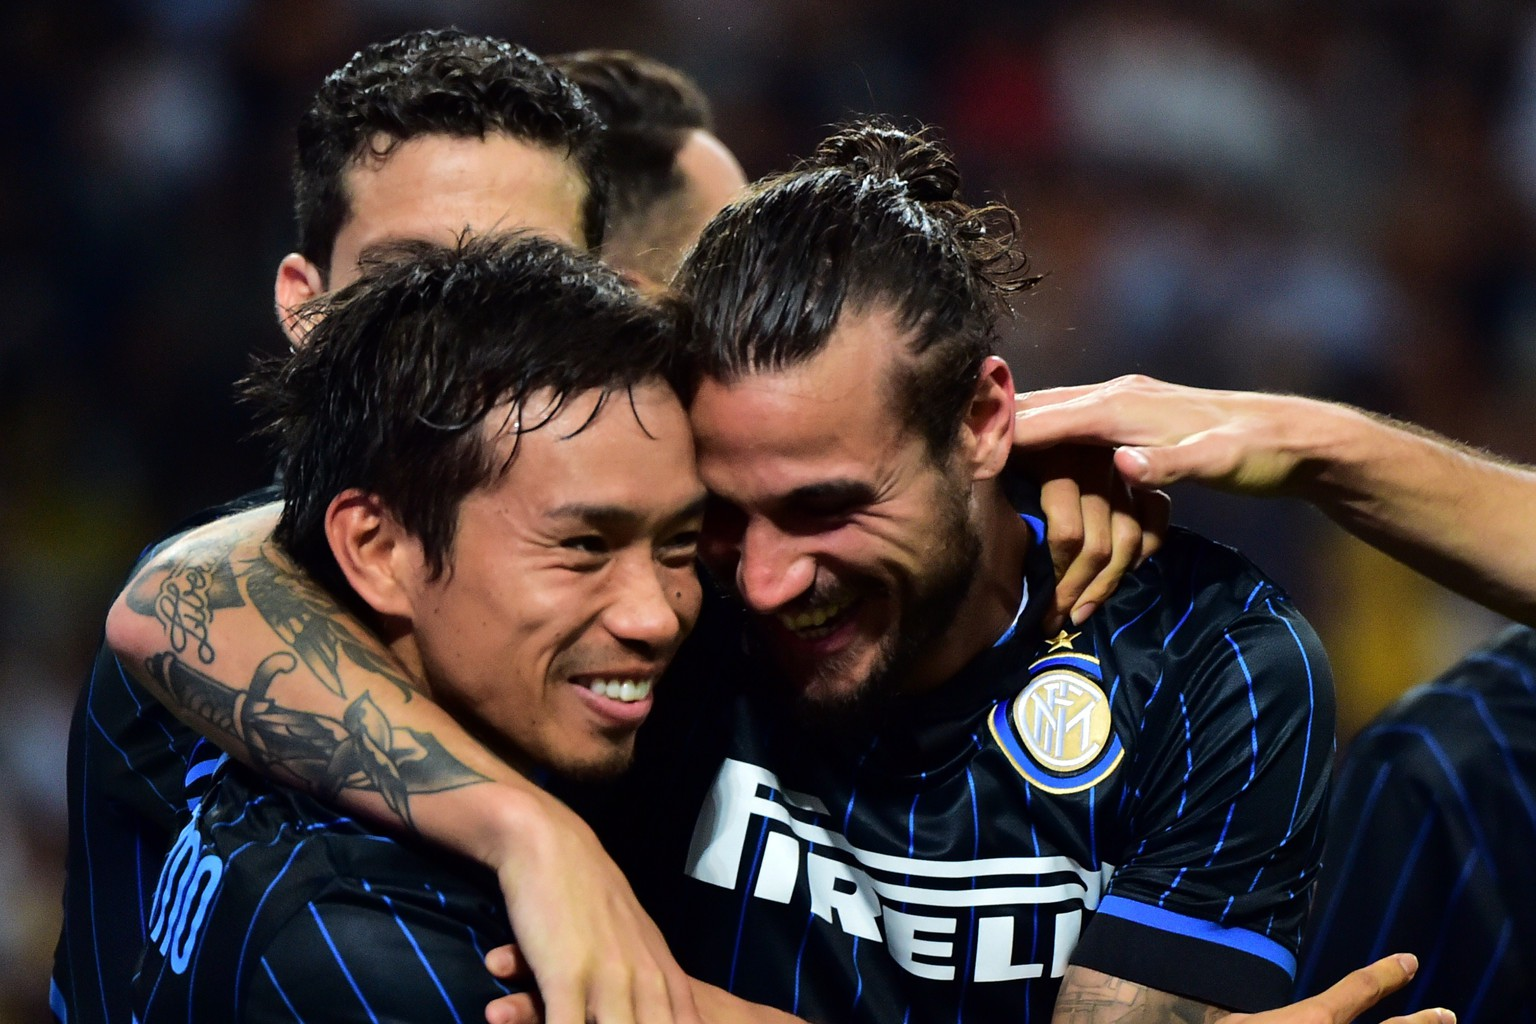 Inter Milan's forward Pablo Osvaldo (R) celebrates with Inter Milan's japanese midfielder Yuto Nagatomo (L) after scoring a goal during the UEFA Europa League play-off football match between Inter Milan vs Stjarnan at San Siro Stadium in Milan on August 28, 2014. AFP PHOTO / GIUSEPPE CACACE